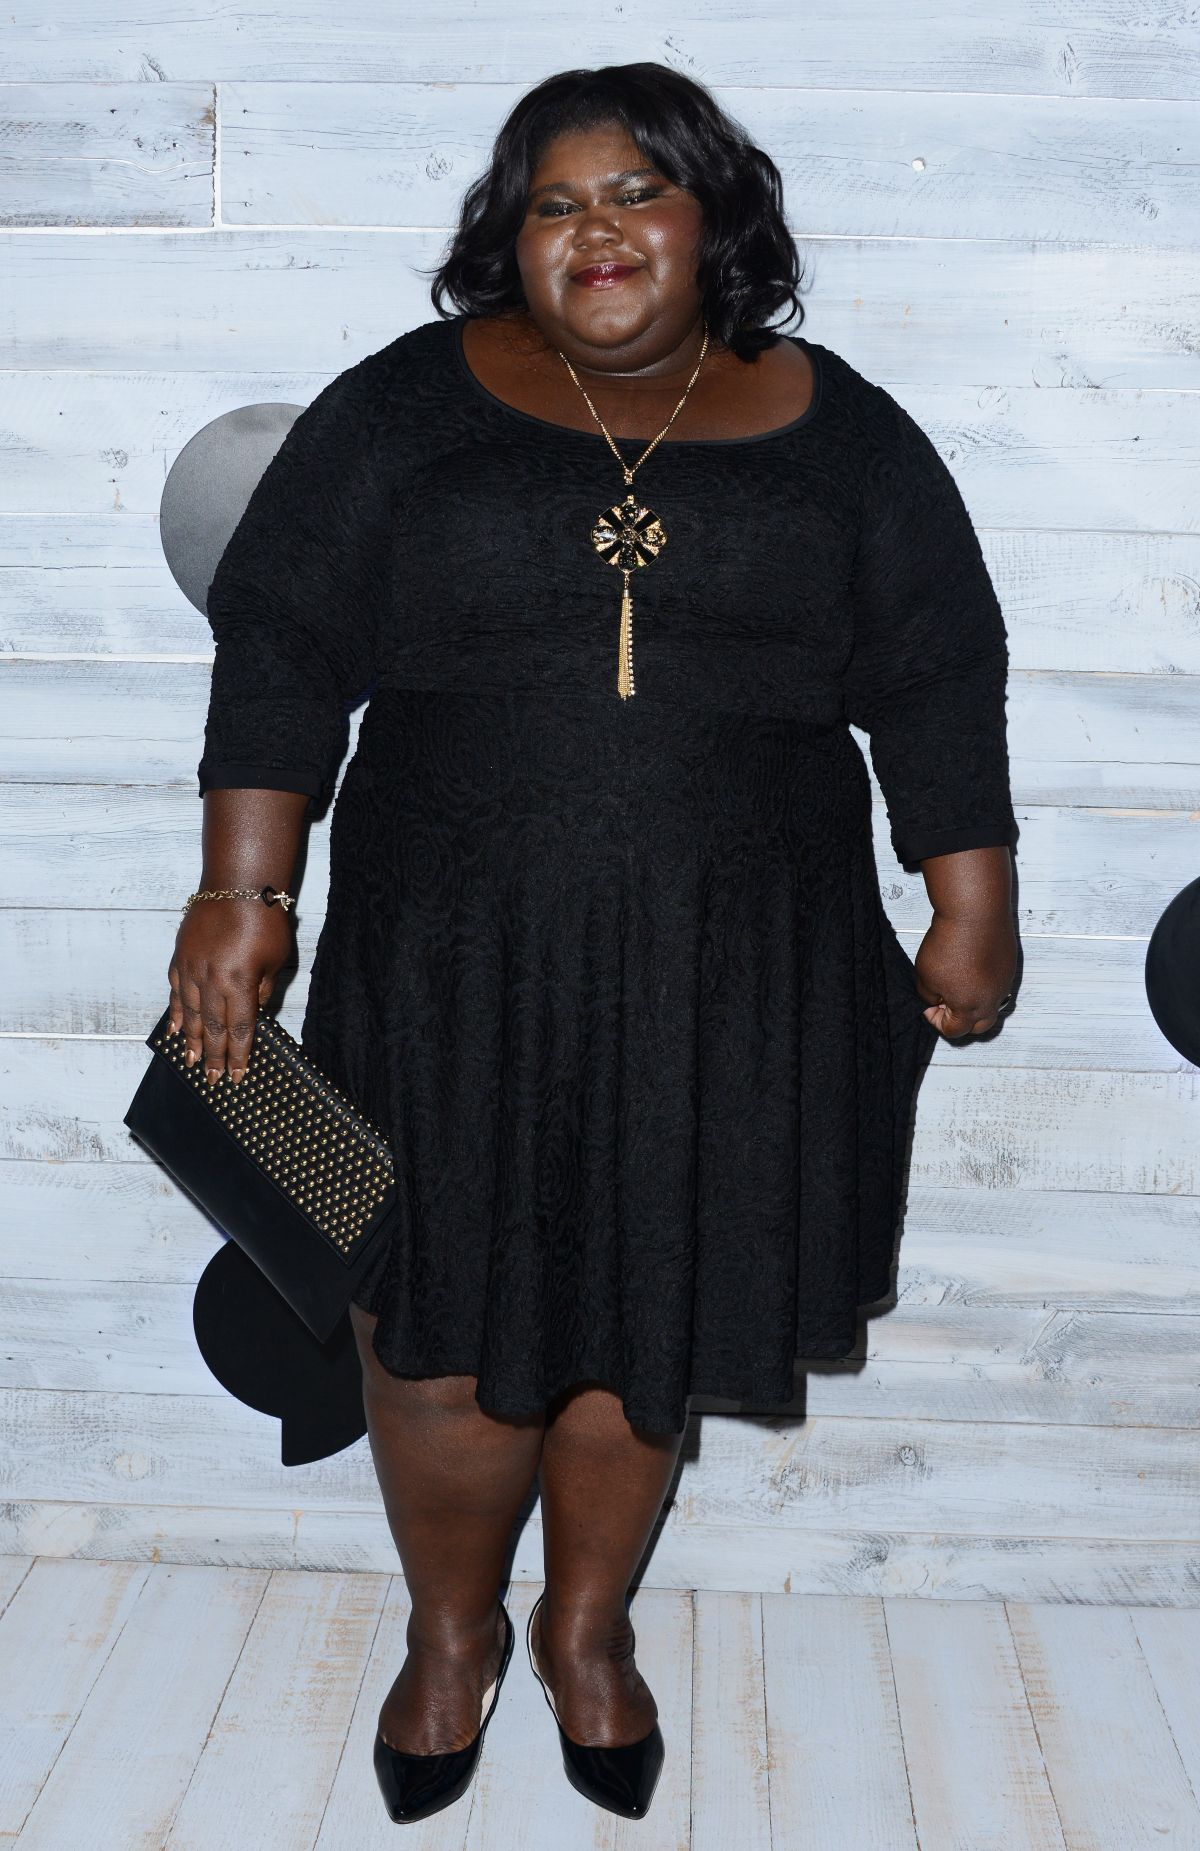 GABOUREY SIDIBE at go90 Social Entertainment Platform VIP Sneak Peak in Los Angeles 09/24/2015